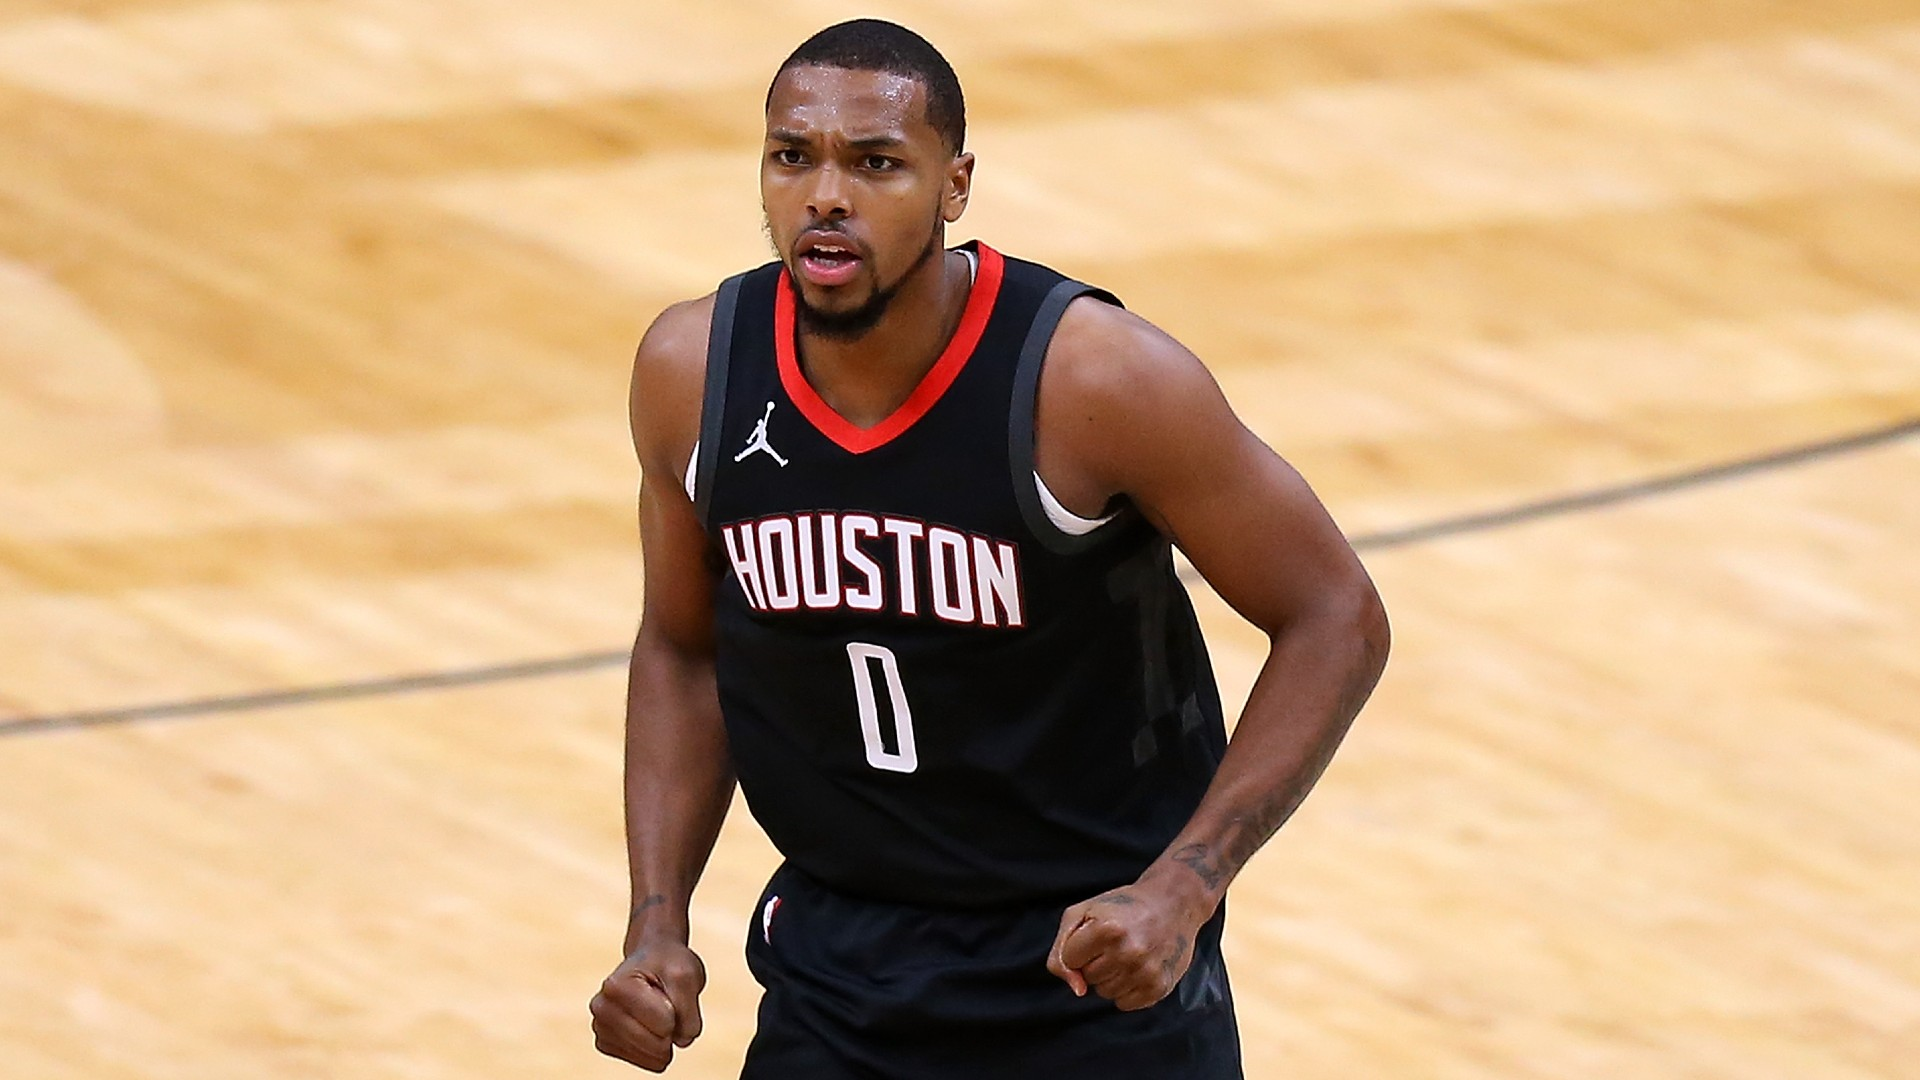 Rockets' Sterling Brown expected to make full recovery after suffering facial lacerations in assault